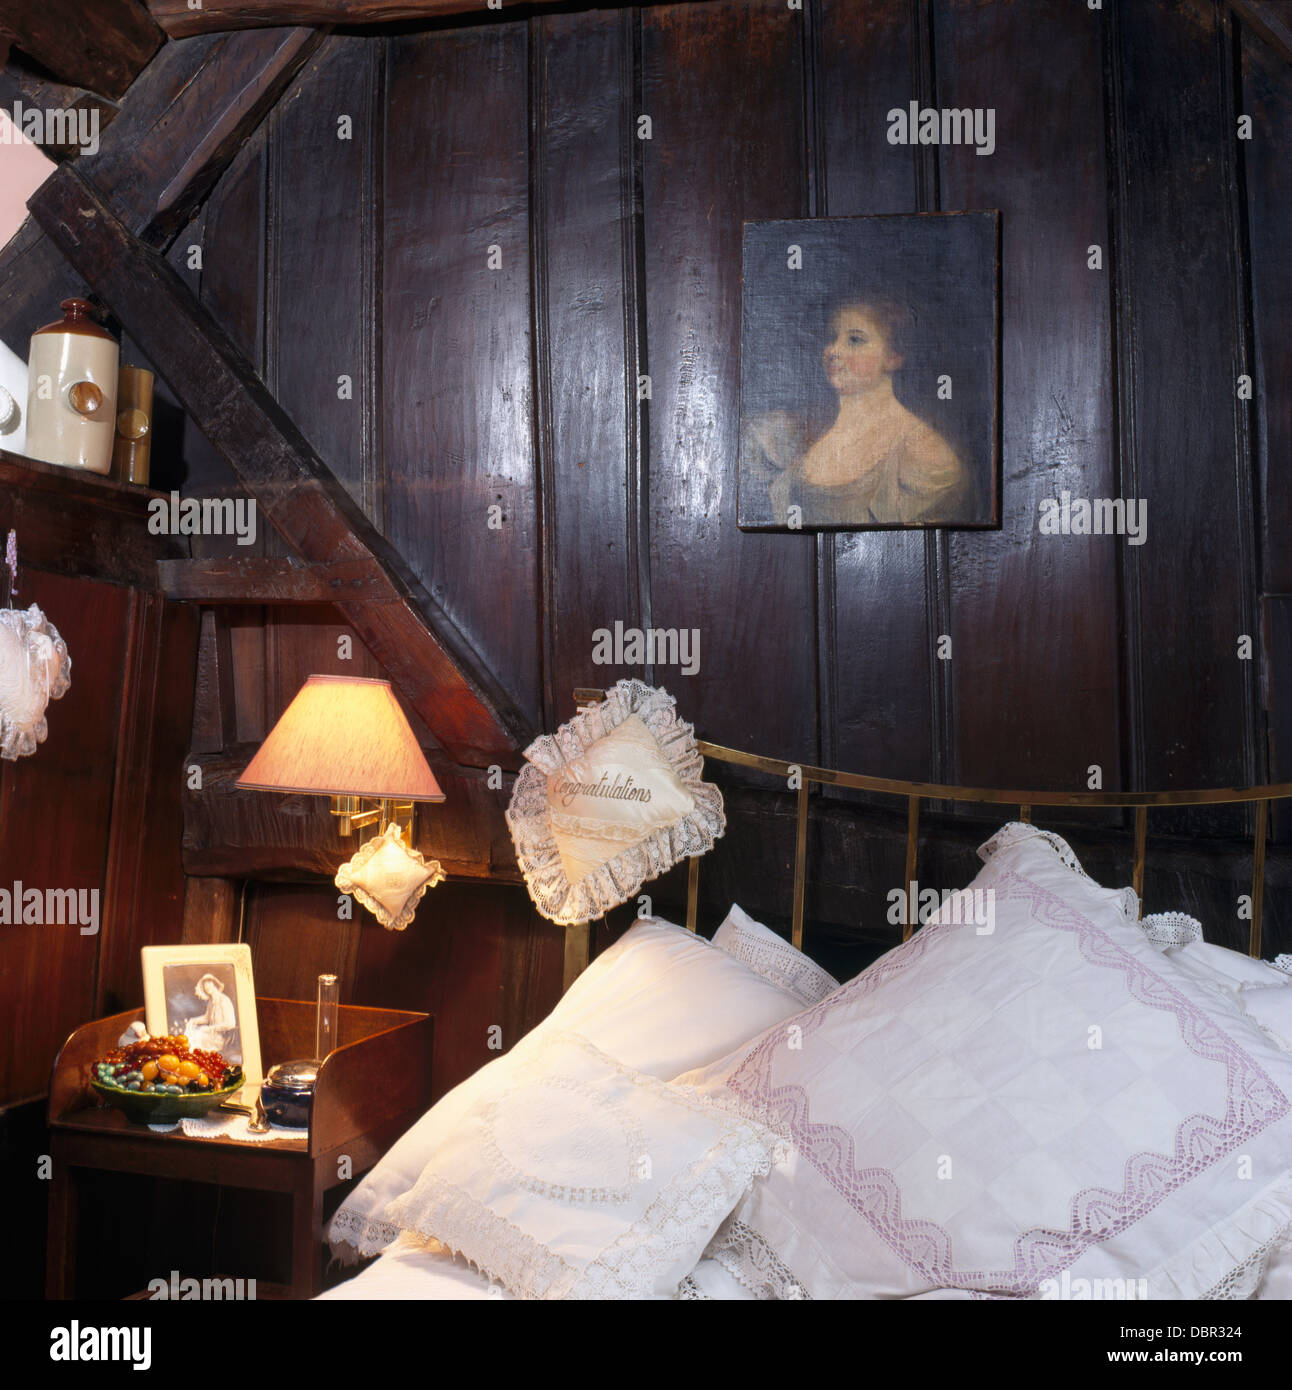 Small Painting On Dark Wood Paneling Above Bed Piled With White Stock Photo Alamy